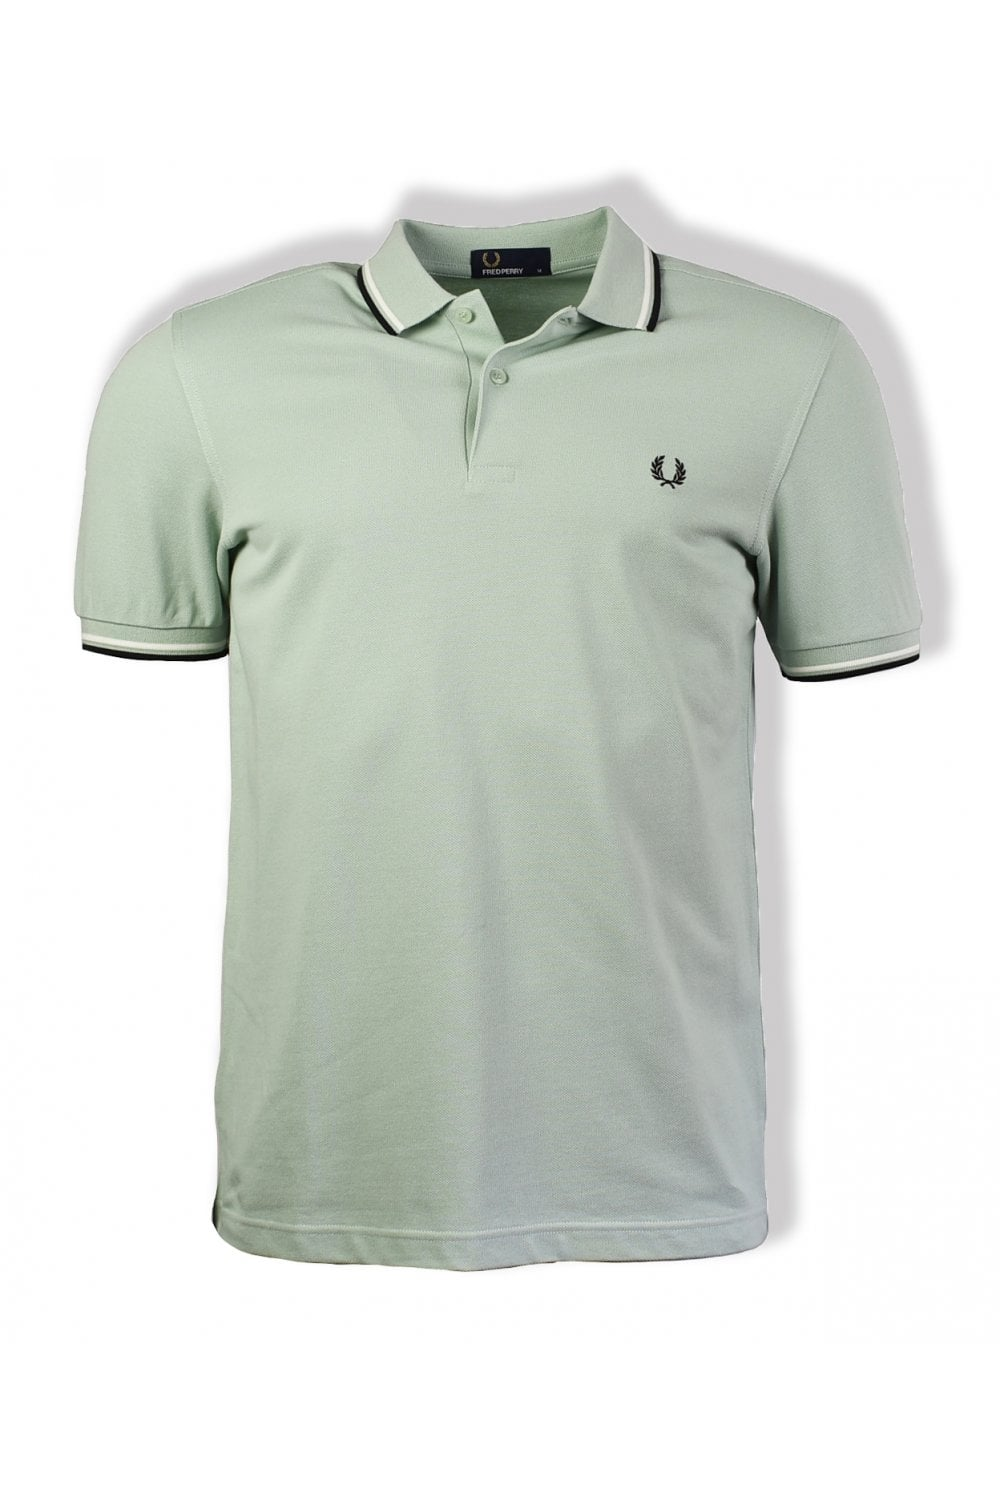 36c9ec1836c3 Fred Perry Twin Tipped Polo Shirt (Mint/Snow White/Black) | ThirtySix